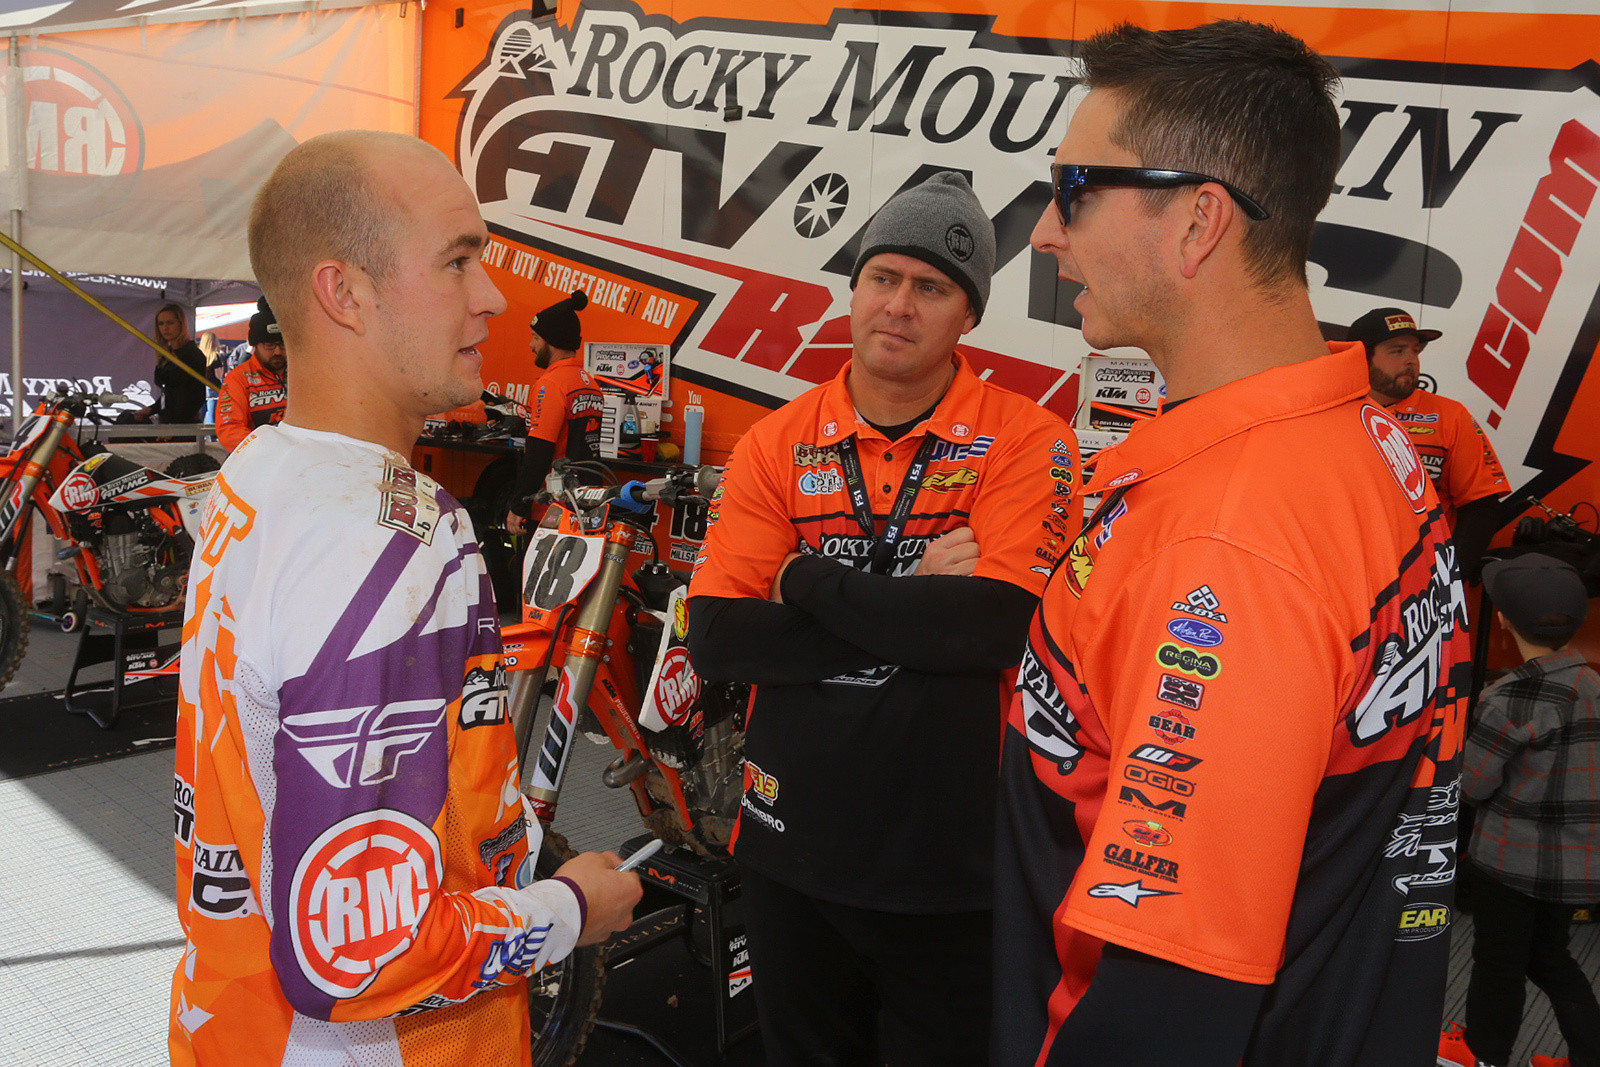 Blake Baggett, Forrest Butler, and Michael Byrne talk strategy.